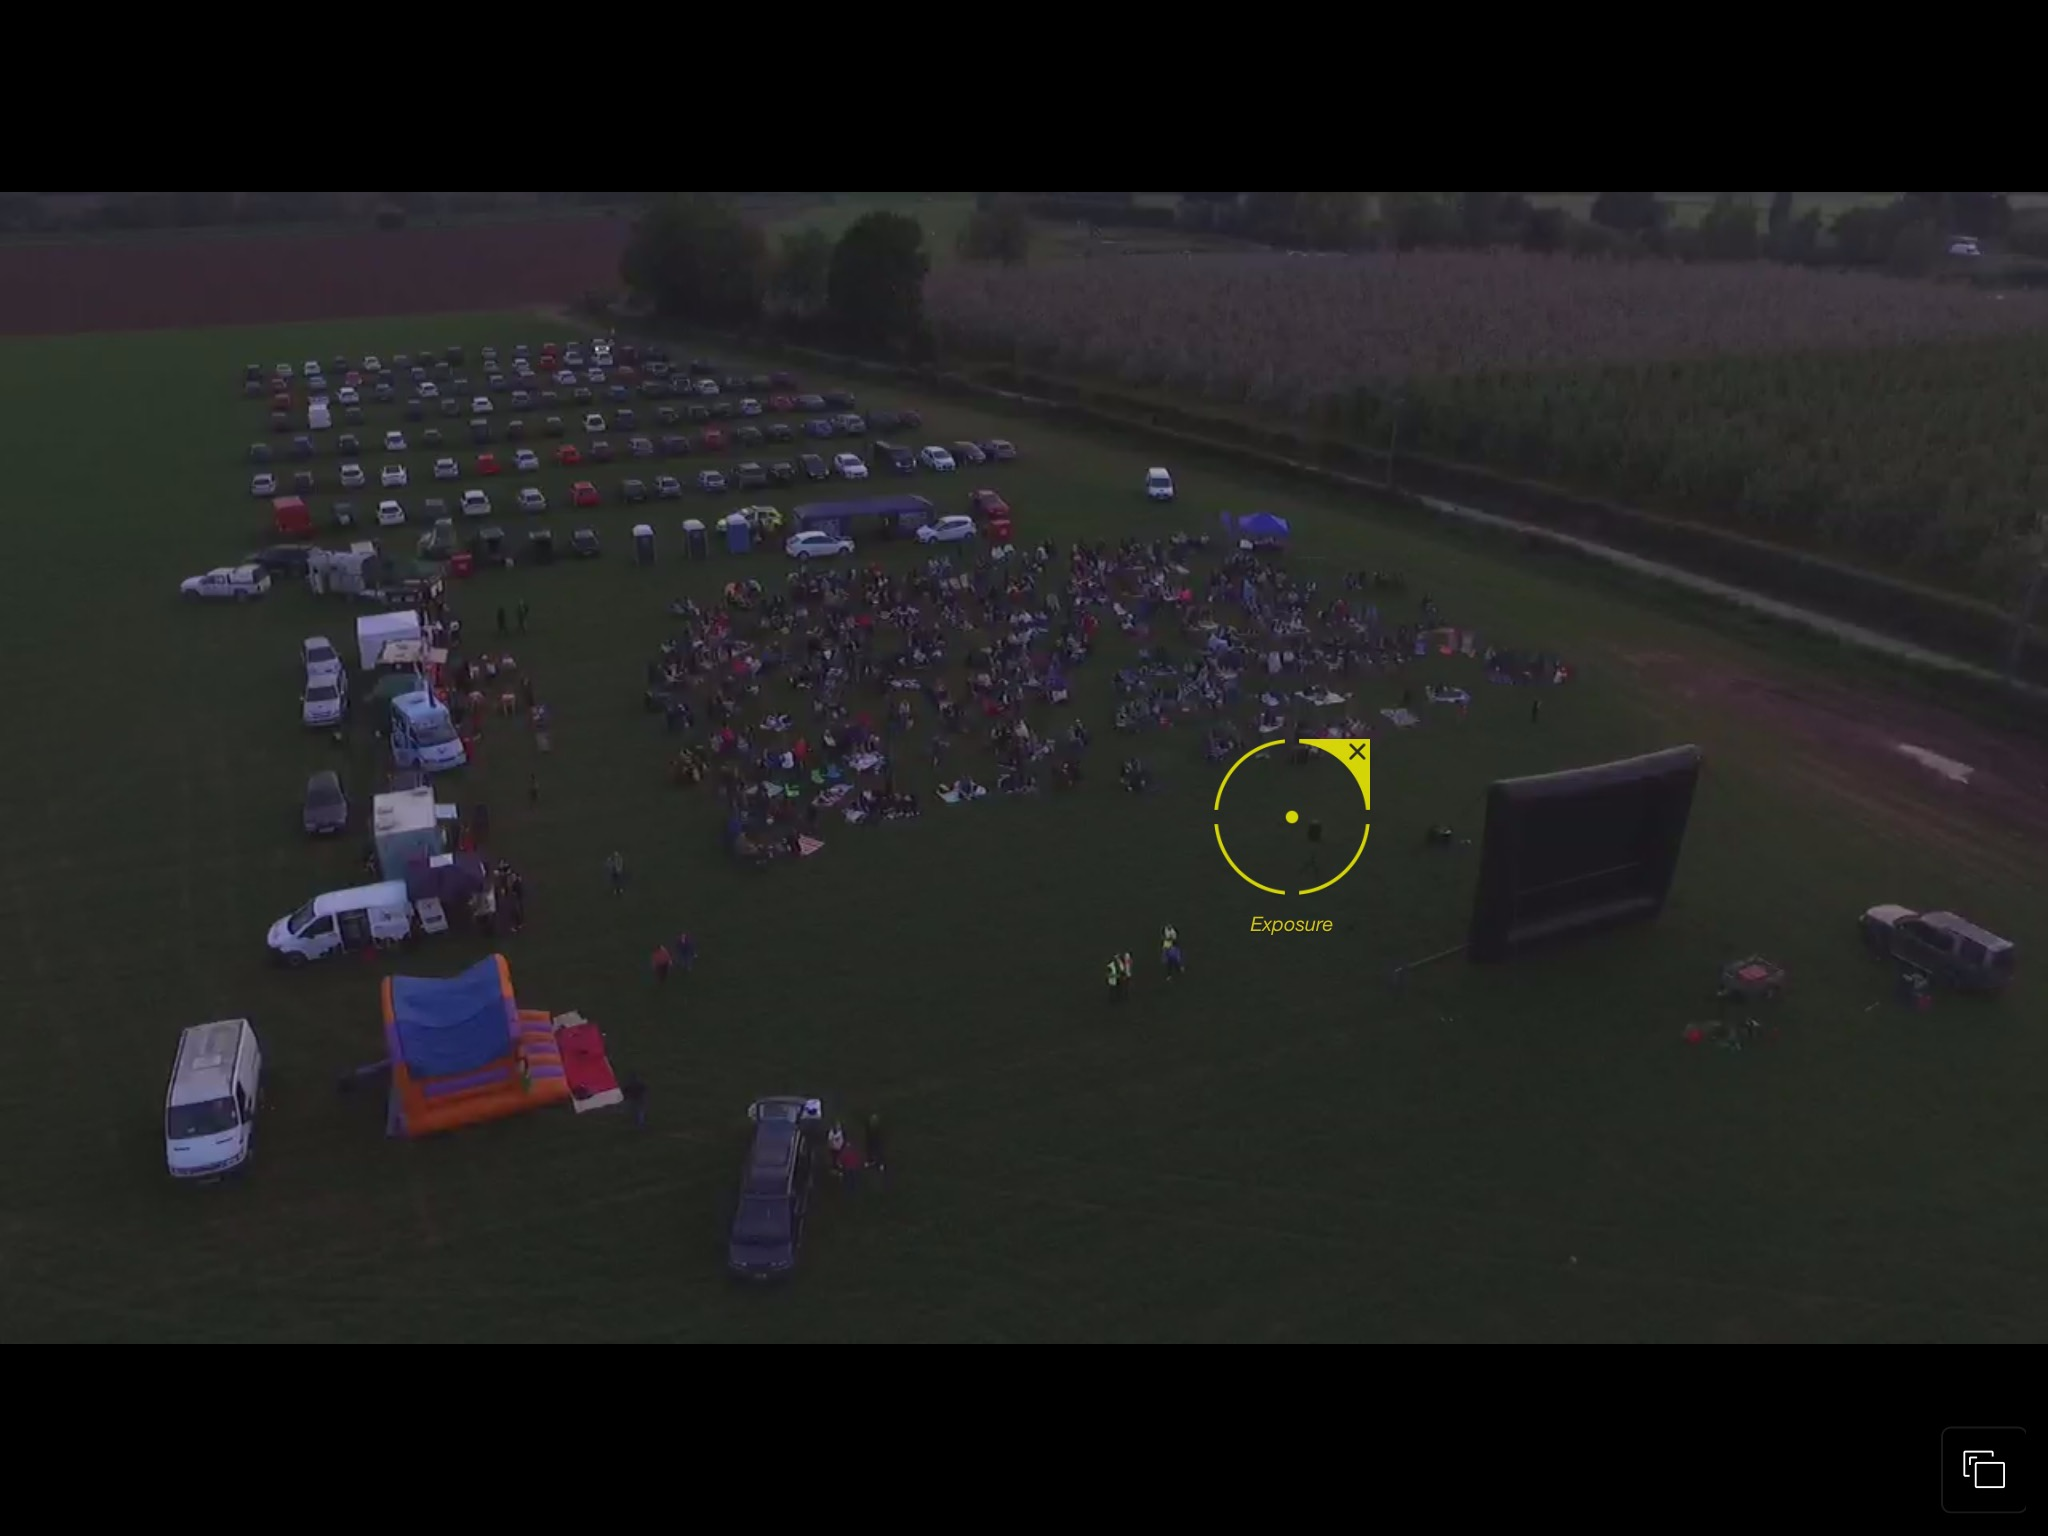 Open air cinema event